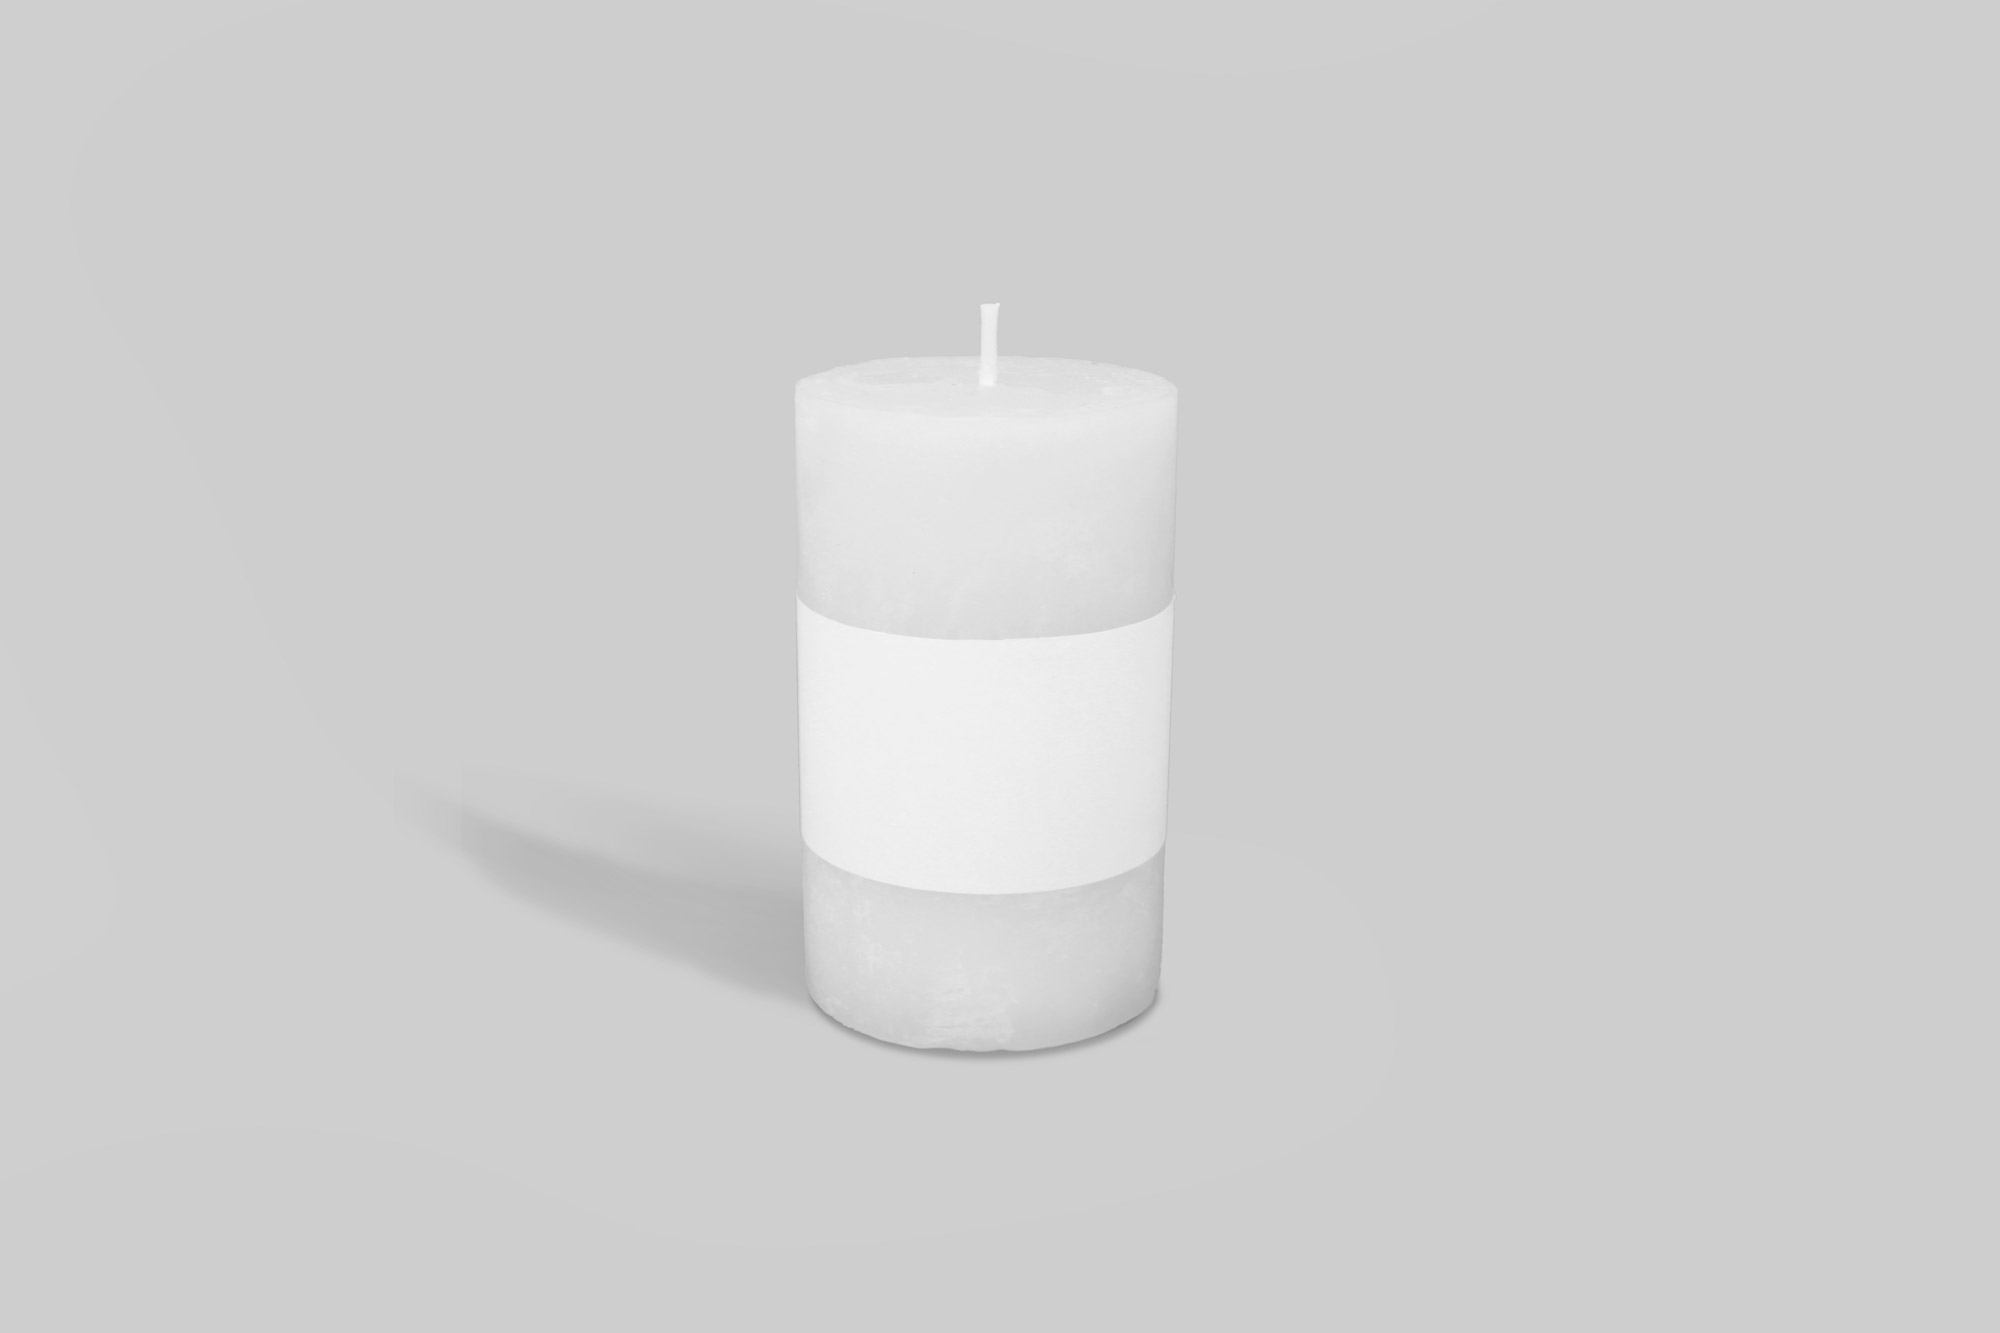 Candle Mock-up Pack #1 example image 4